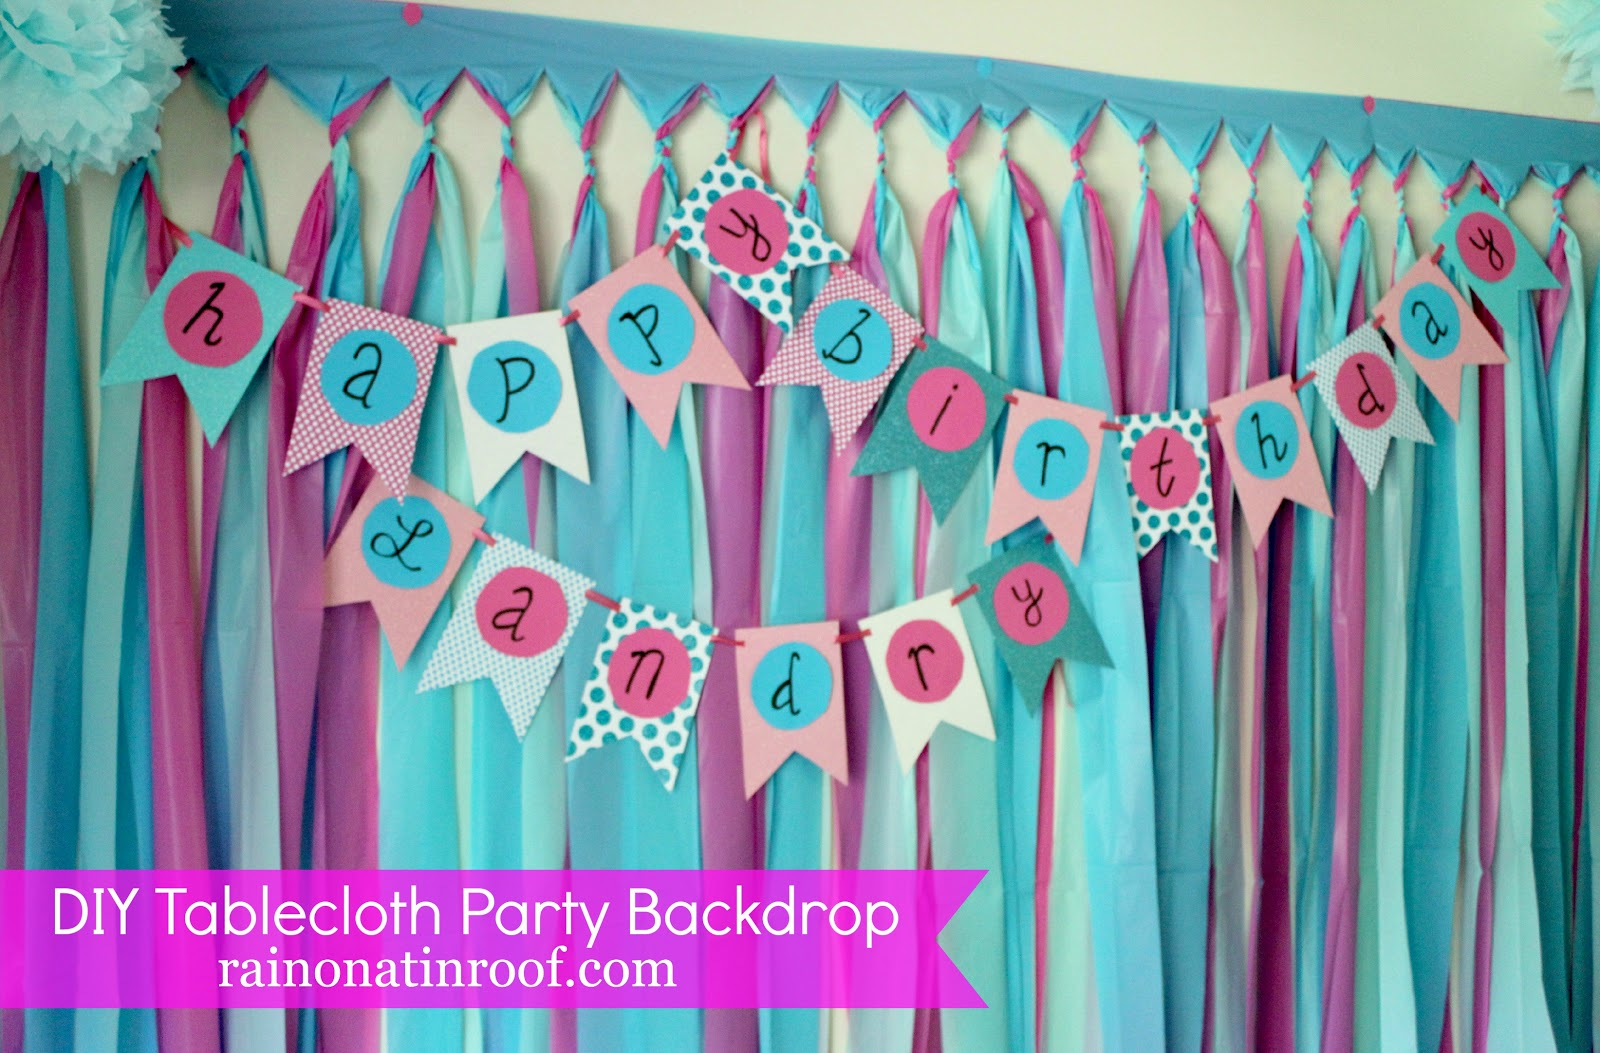 Cheap party decorations party favors ideas for Party backdrop ideas